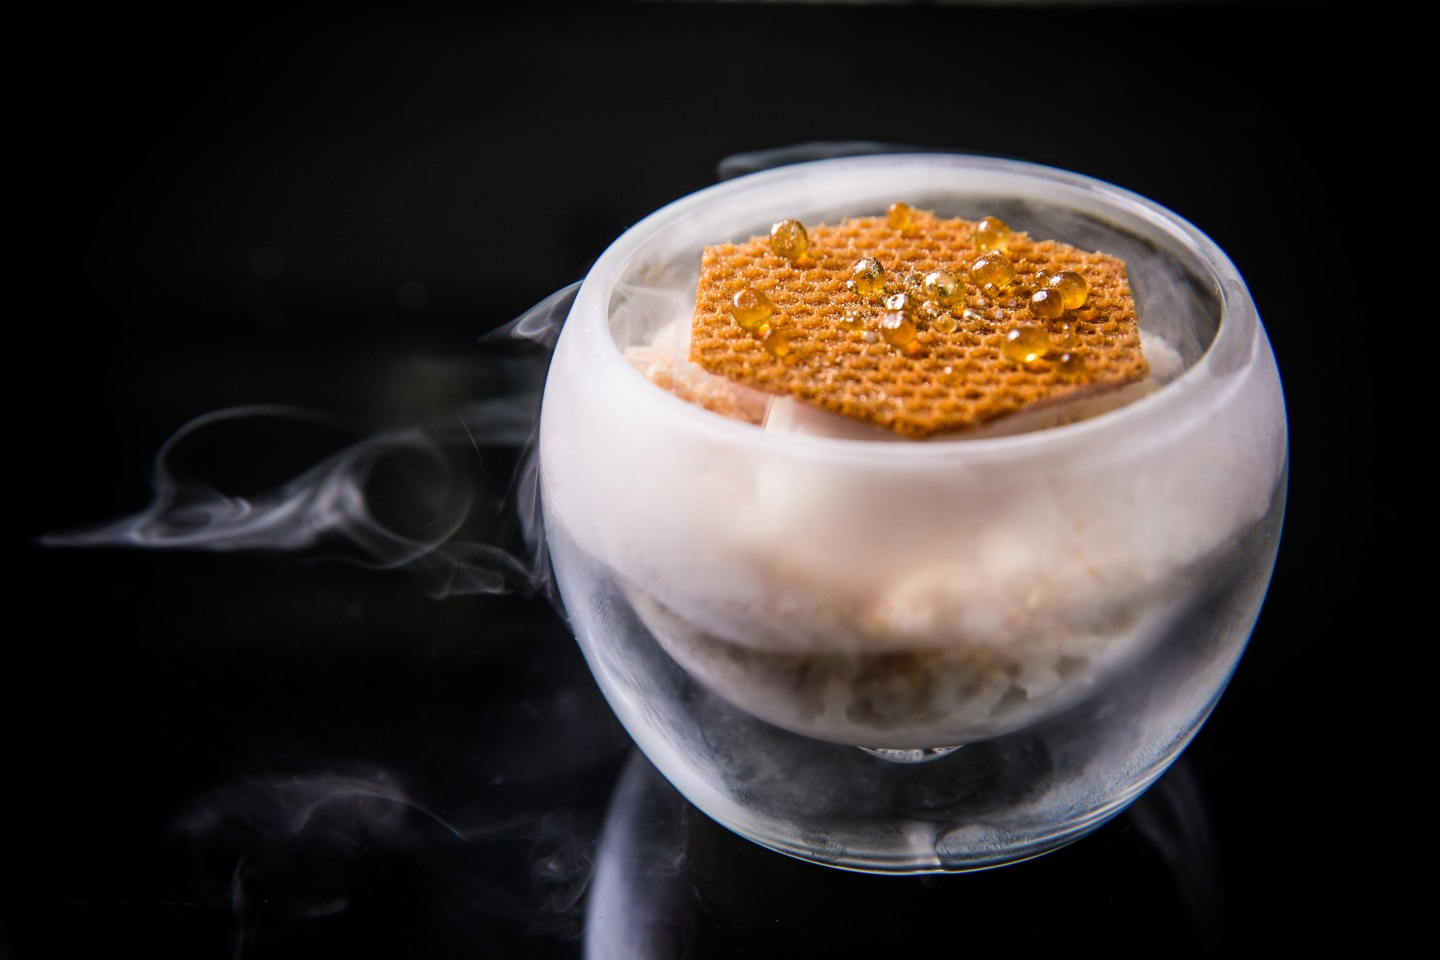 KOI_Dessert_Milk-Honey.jpg